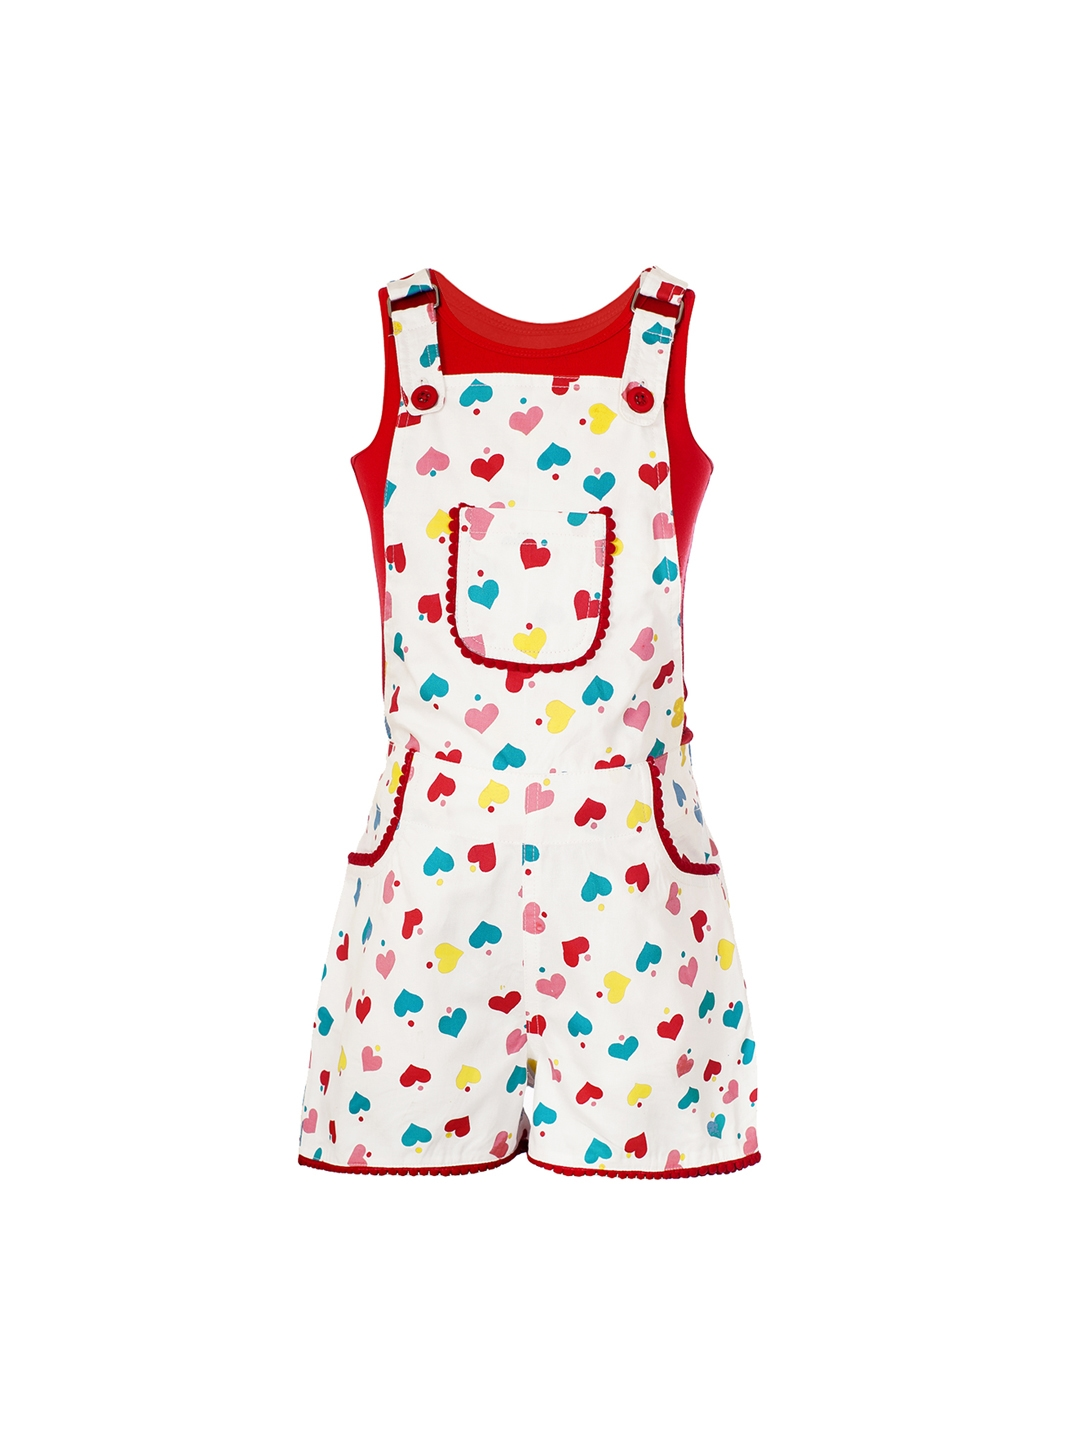 5214f0a31 Buy Naughty Ninos Girls White   Red Dungarees With T Shirt ...